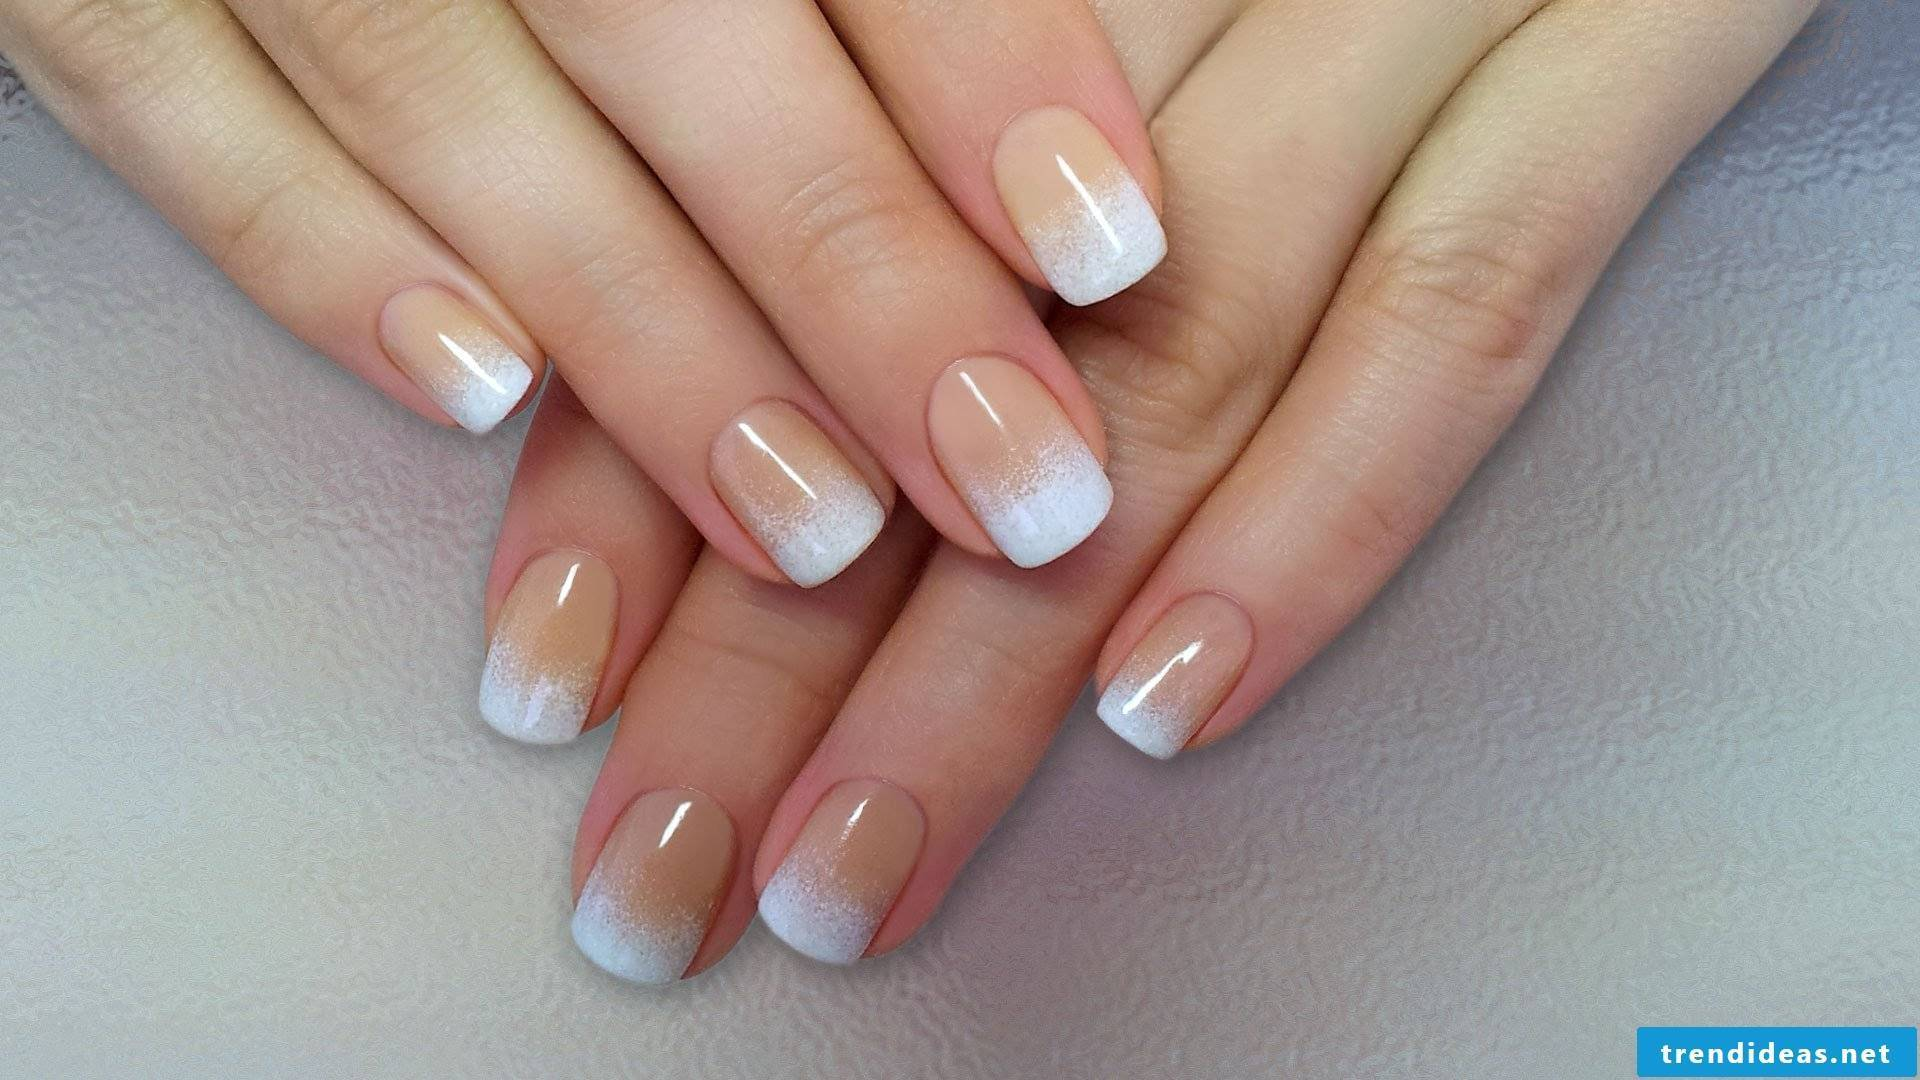 Ombre nails - noble and well-groomed